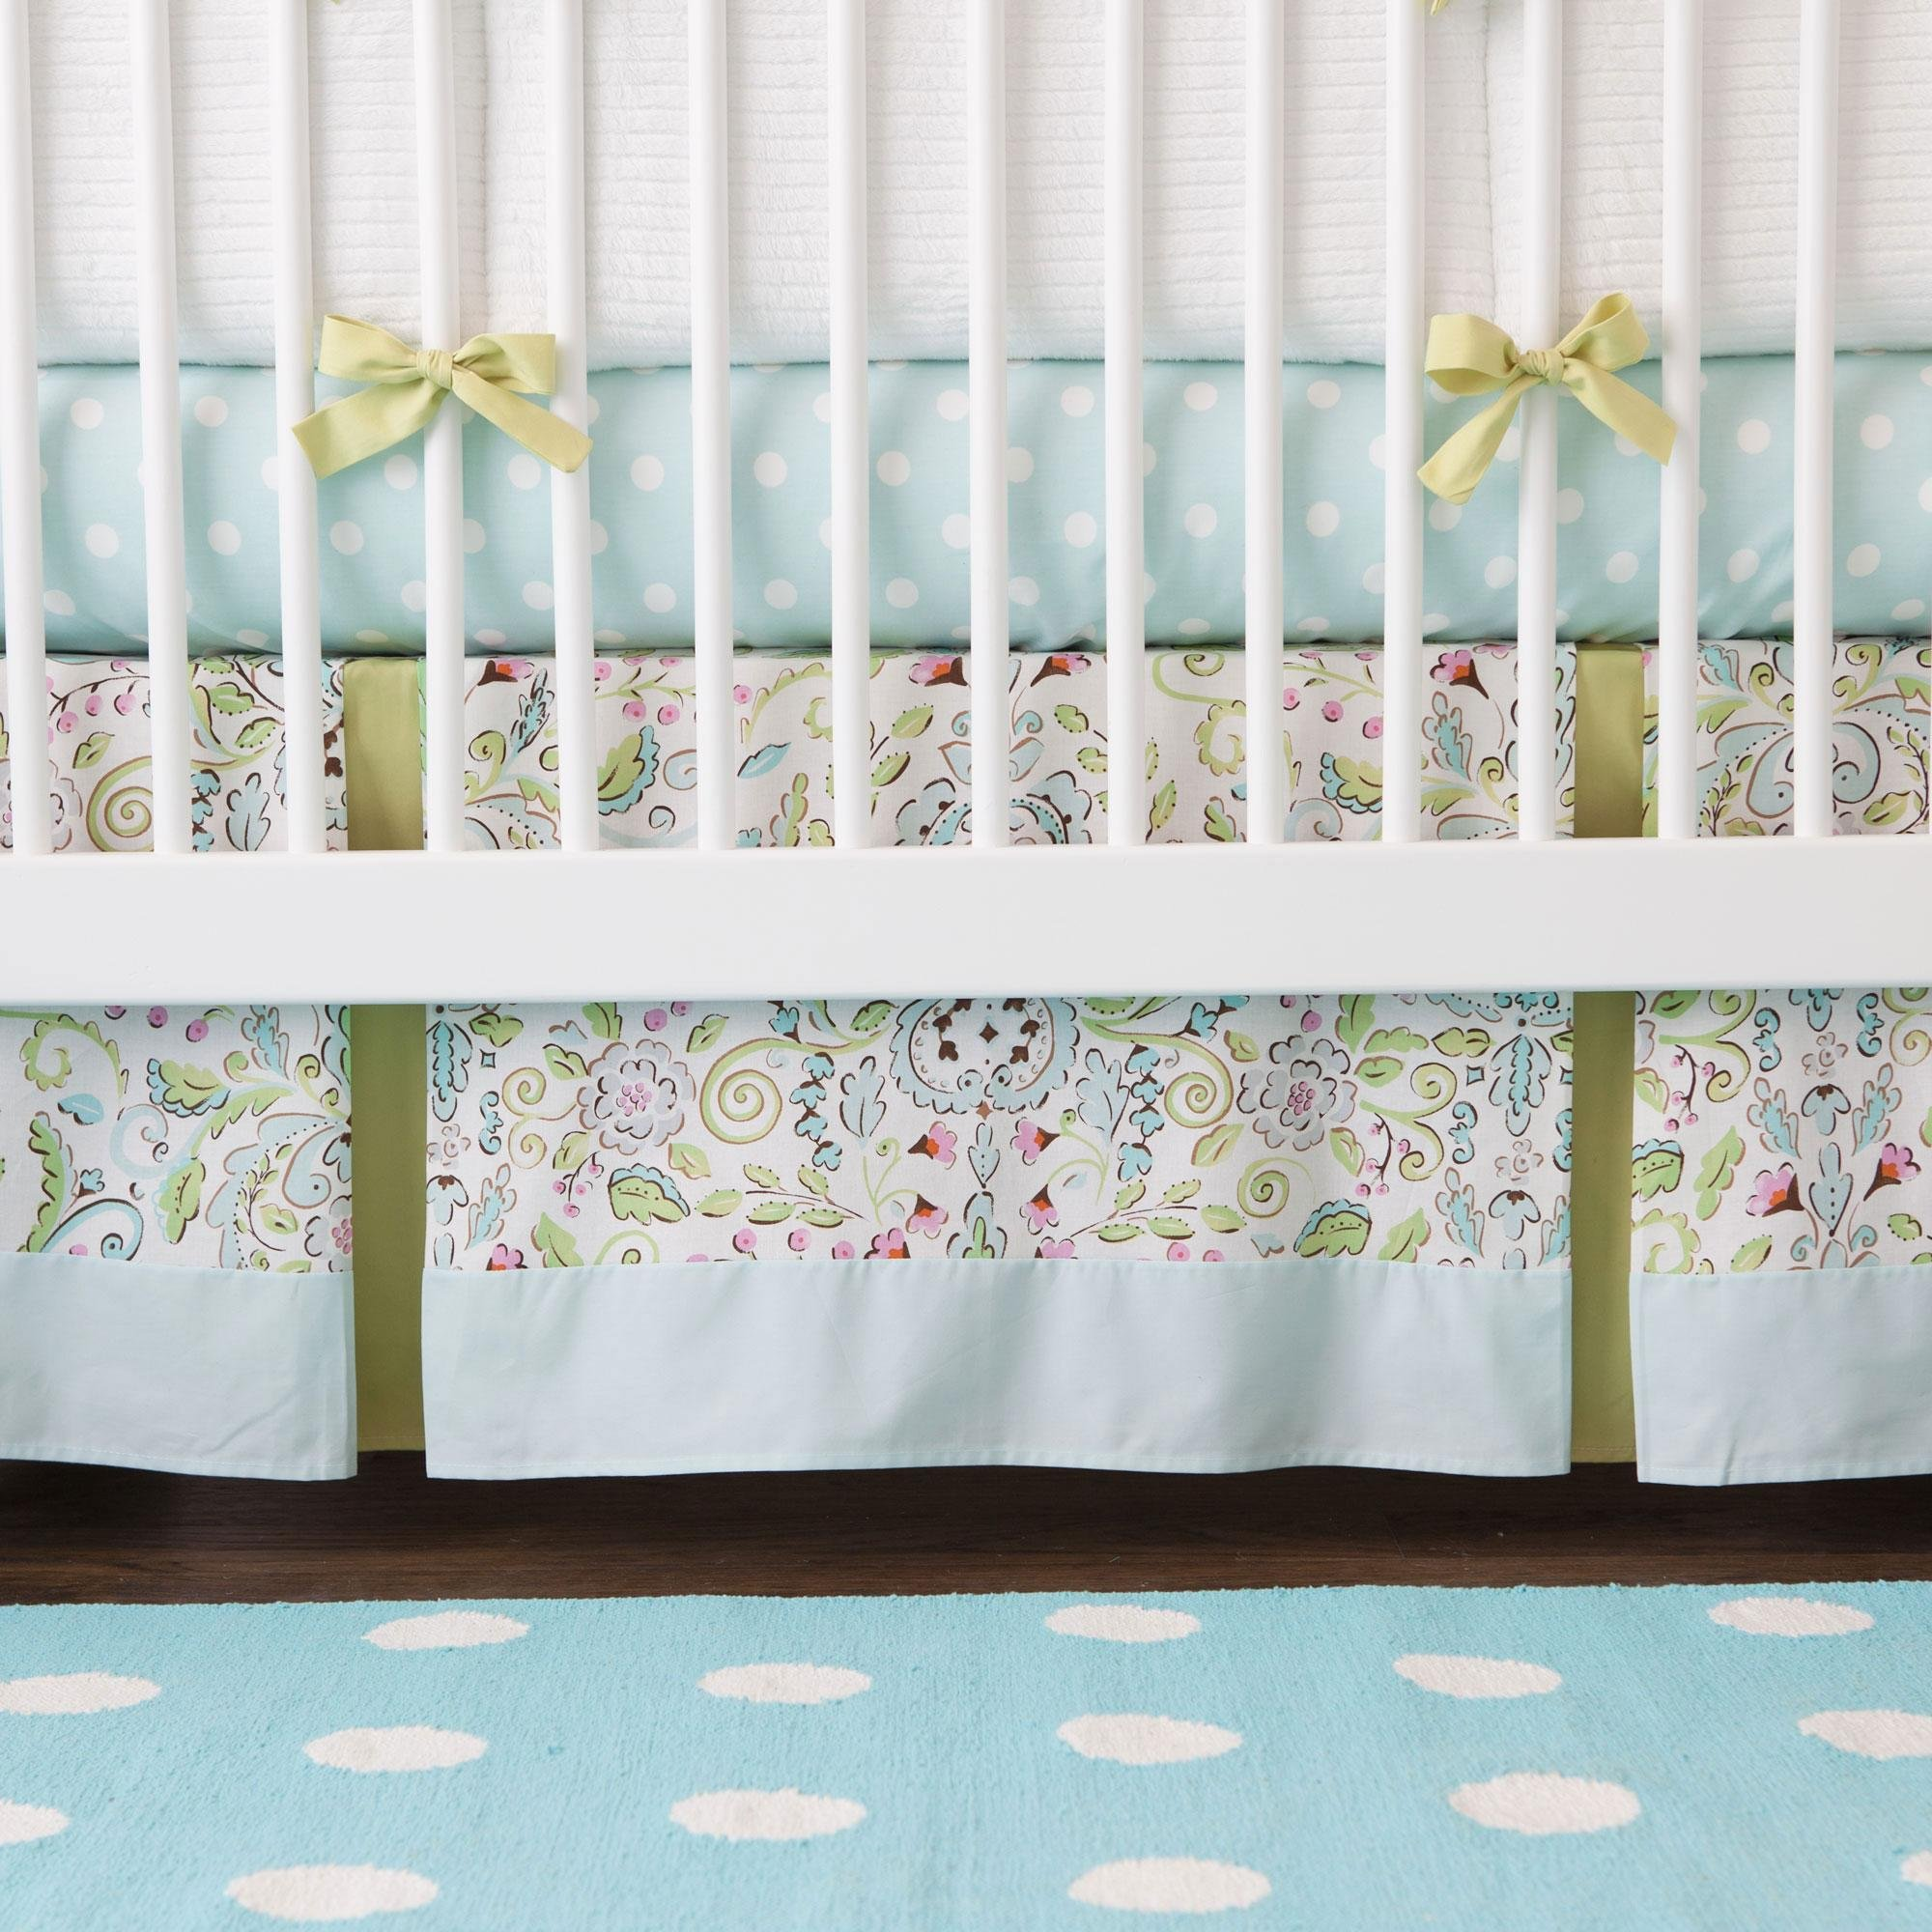 Carousel Designs Bebe Jardin Crib Skirt Two Front Pleats 14-Inch Length by Carousel Designs